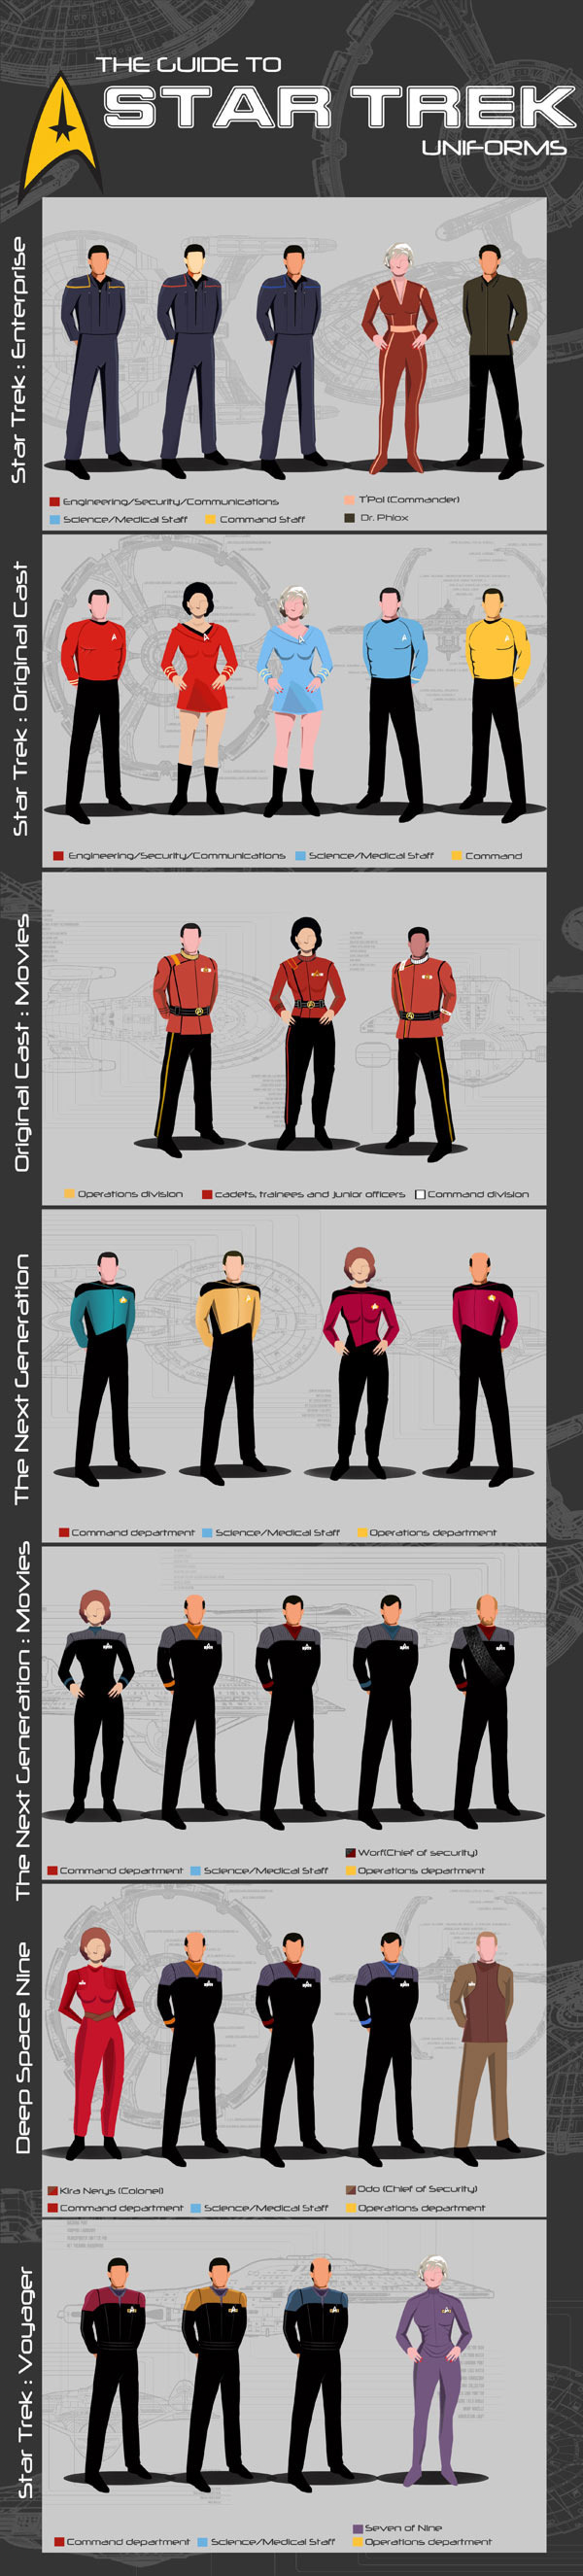 The Guide to Star Trek Uniforms